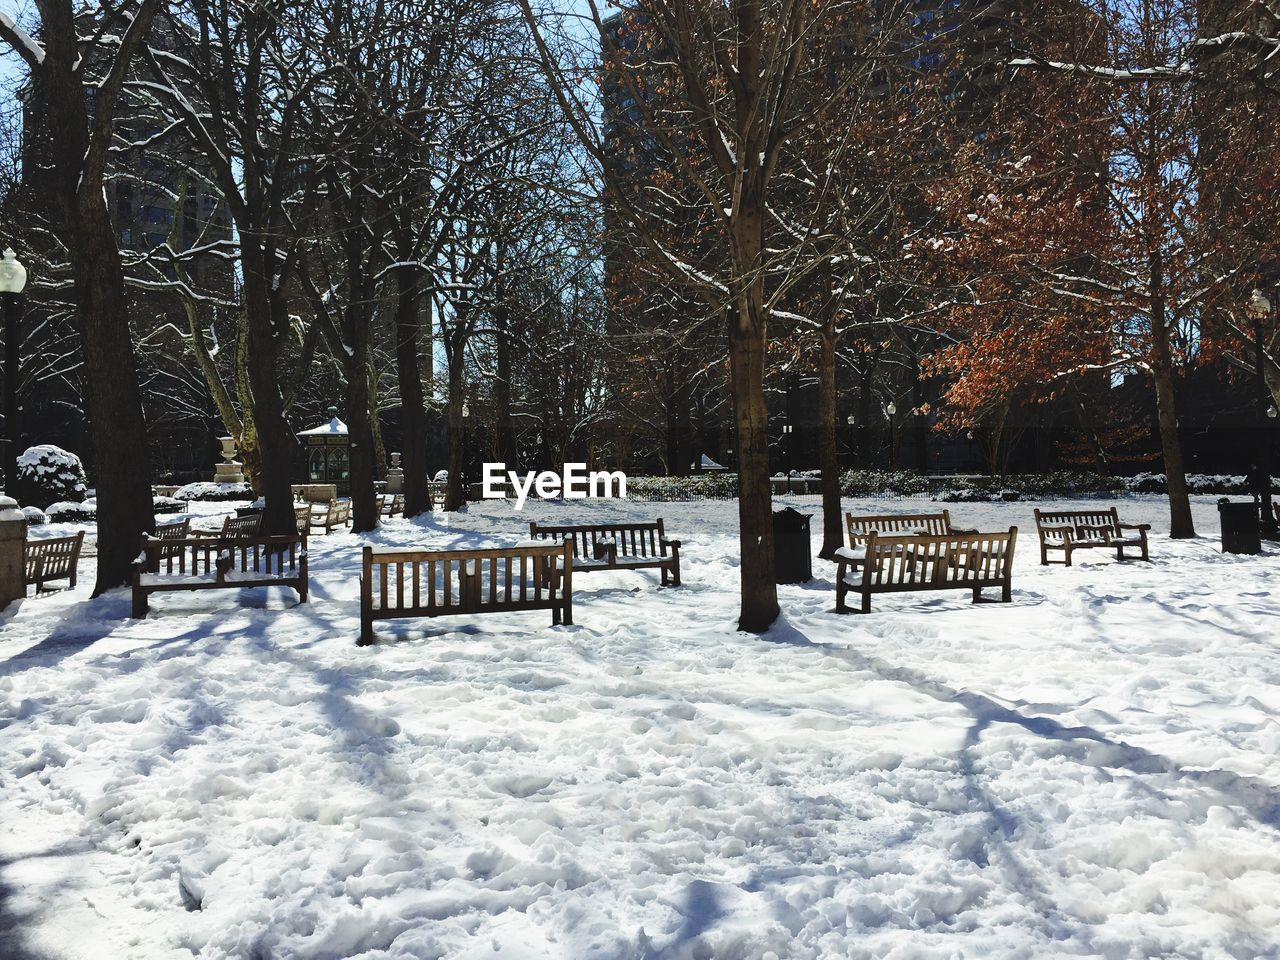 Trees and empty benches in snow covered park